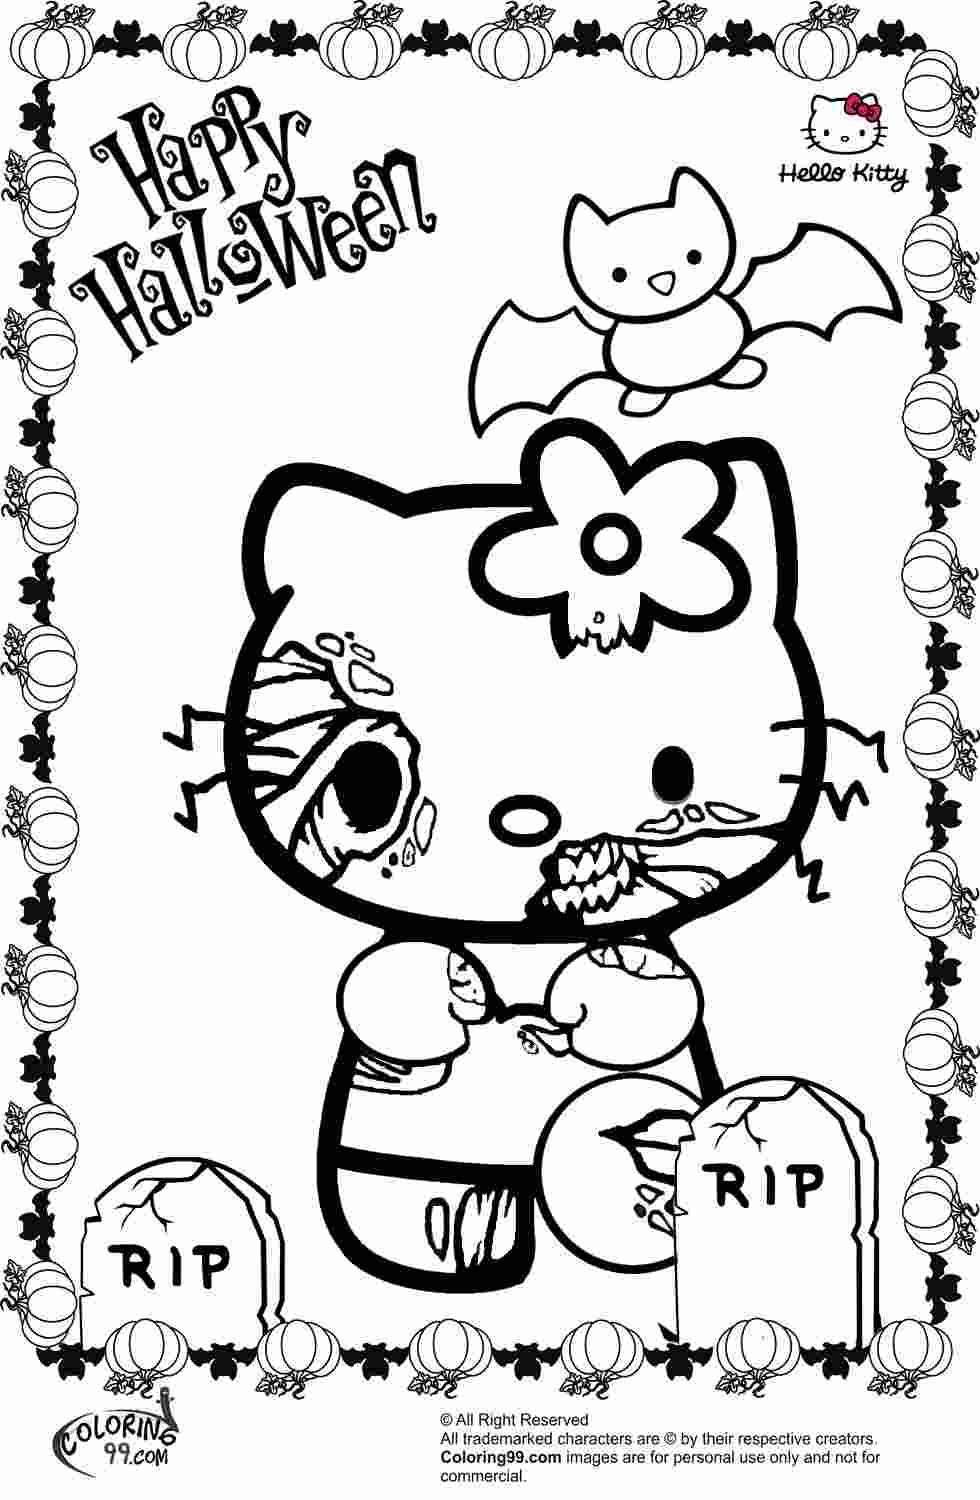 Coloring Book Scary Hello Kitty Coloring Pages More Than 86 Amazing Coloring Sheets Co In 2020 Hello Kitty Coloring Hello Kitty Colouring Pages Kitty Coloring